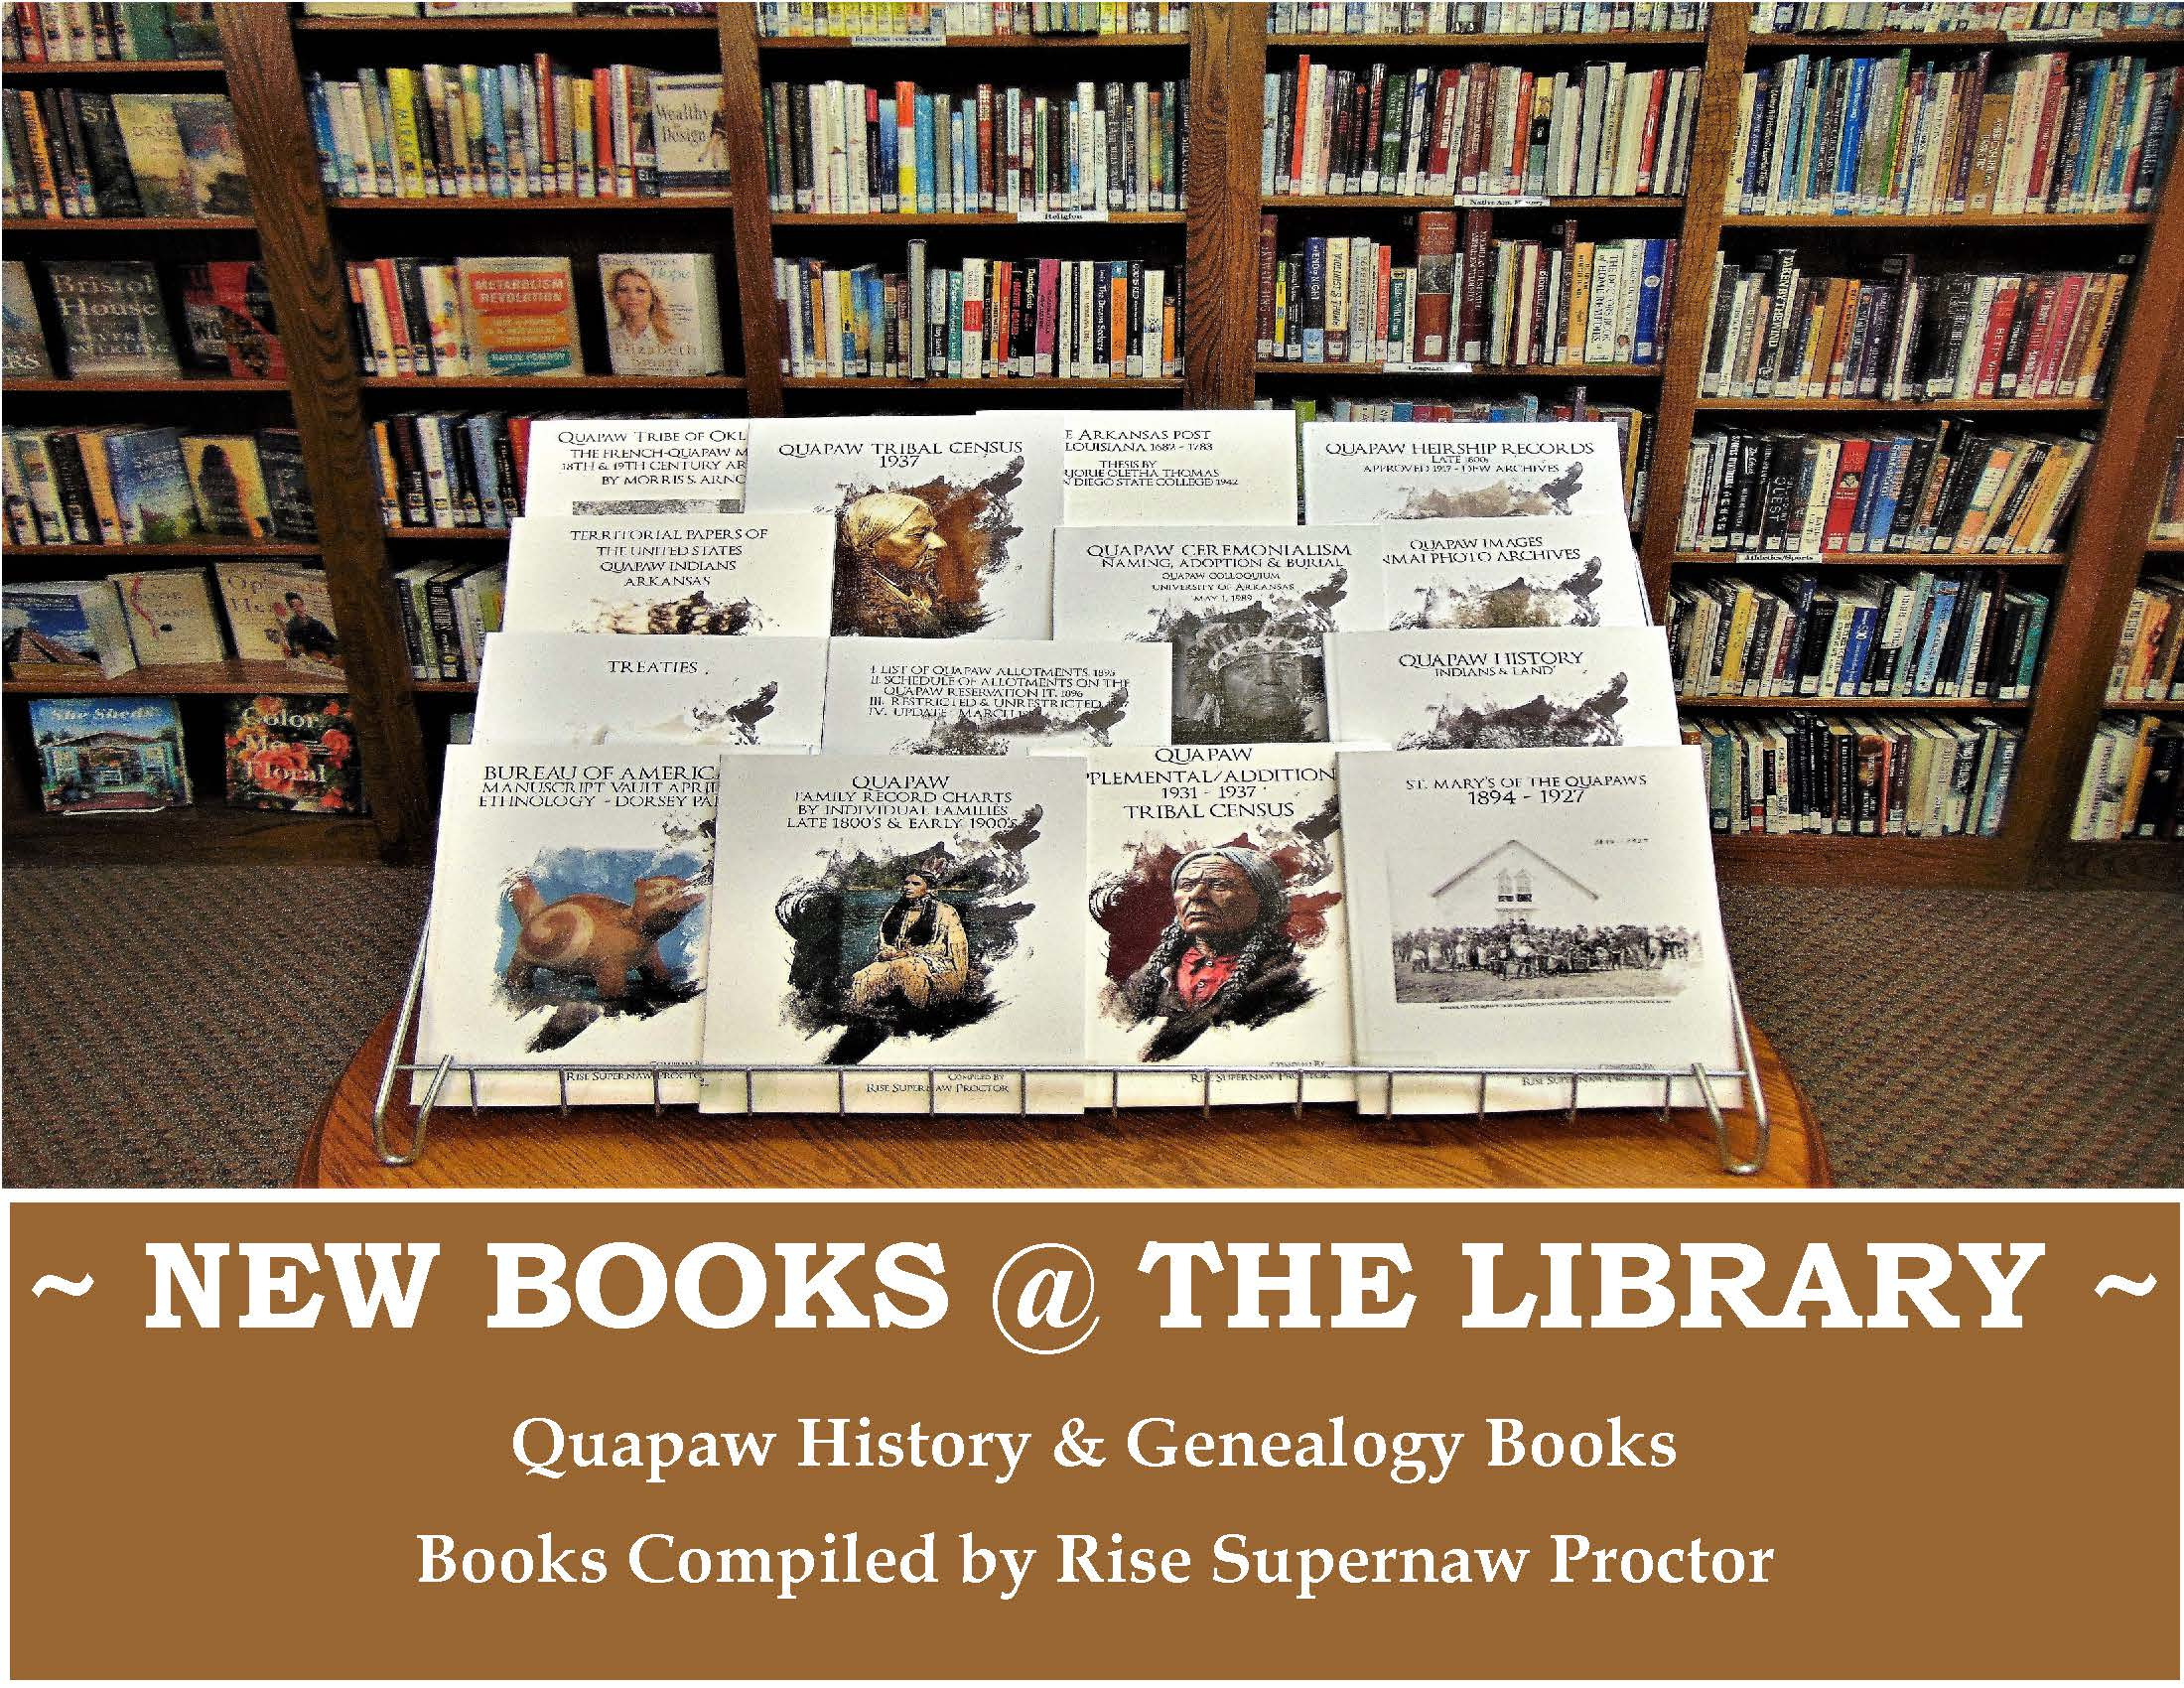 New Books at the Library